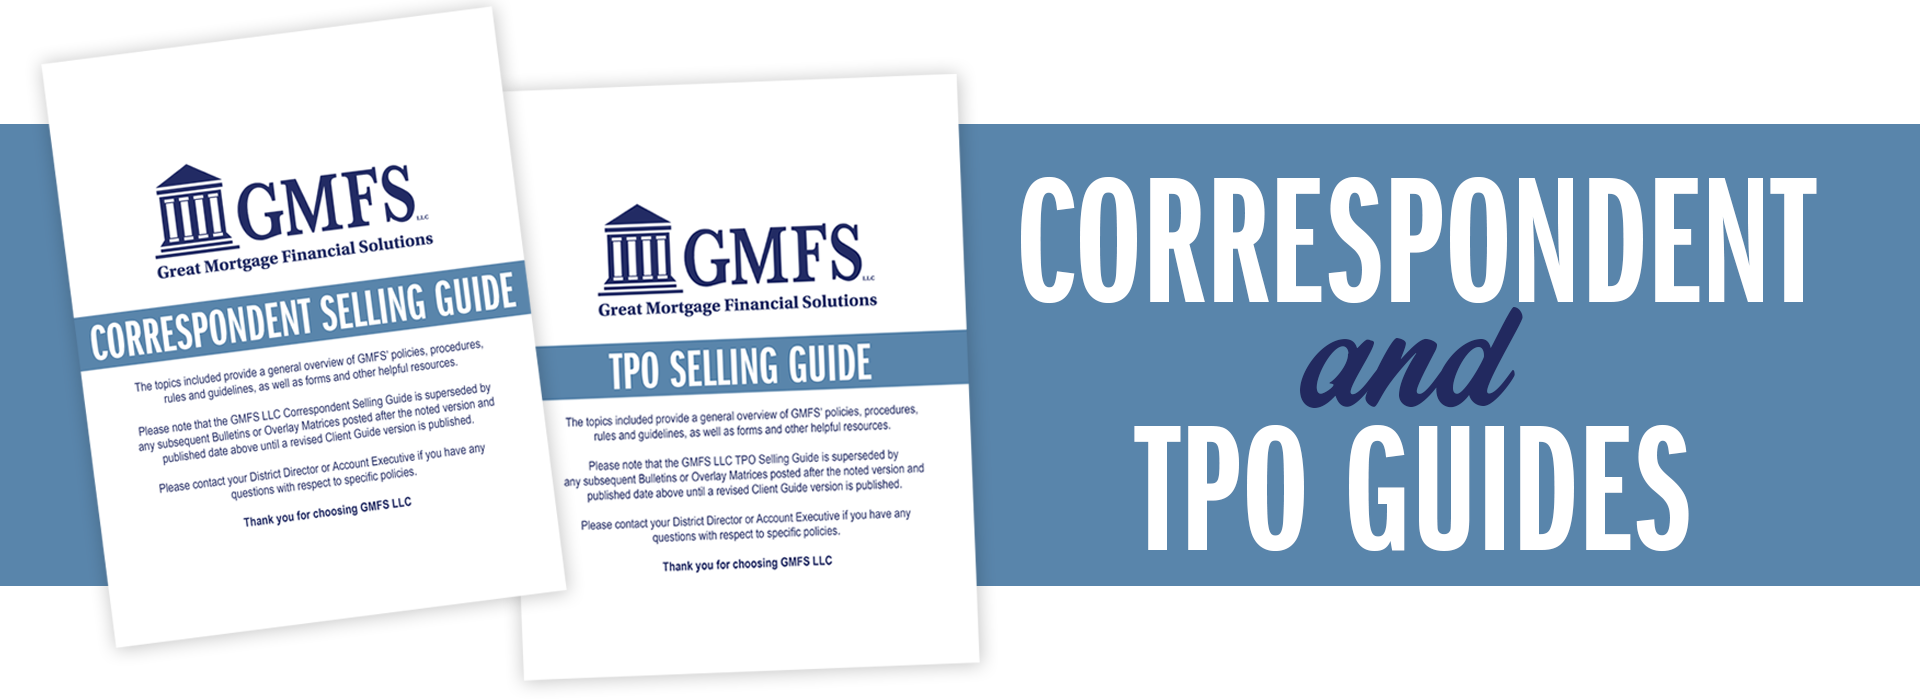 tpo and correspondent guides